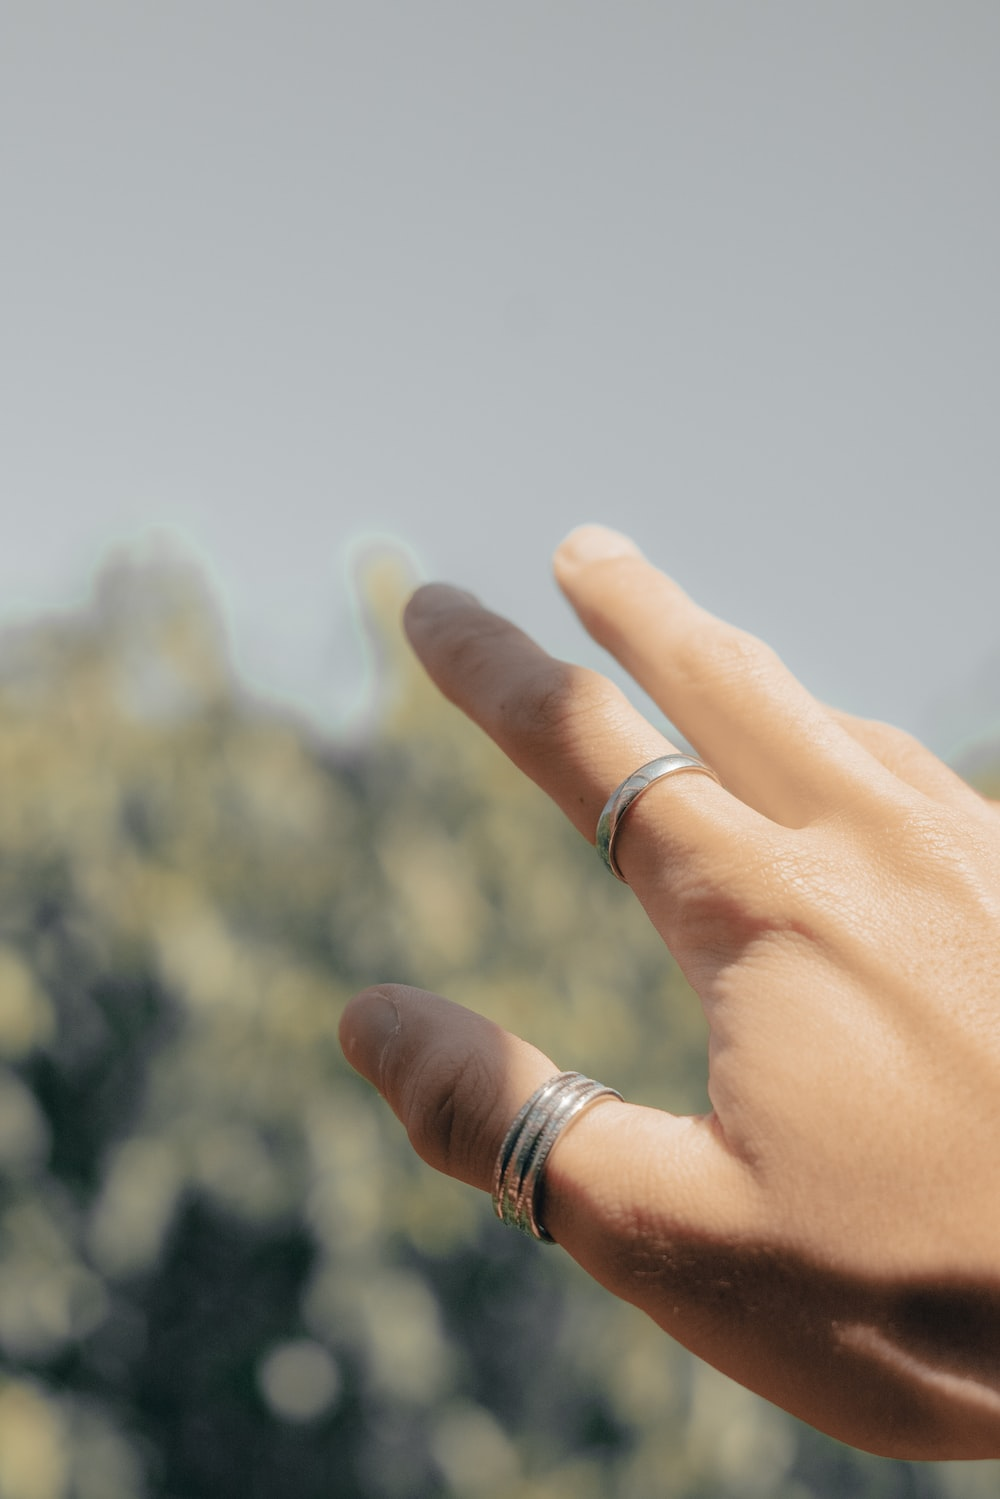 person wearing silver ring and gold ring